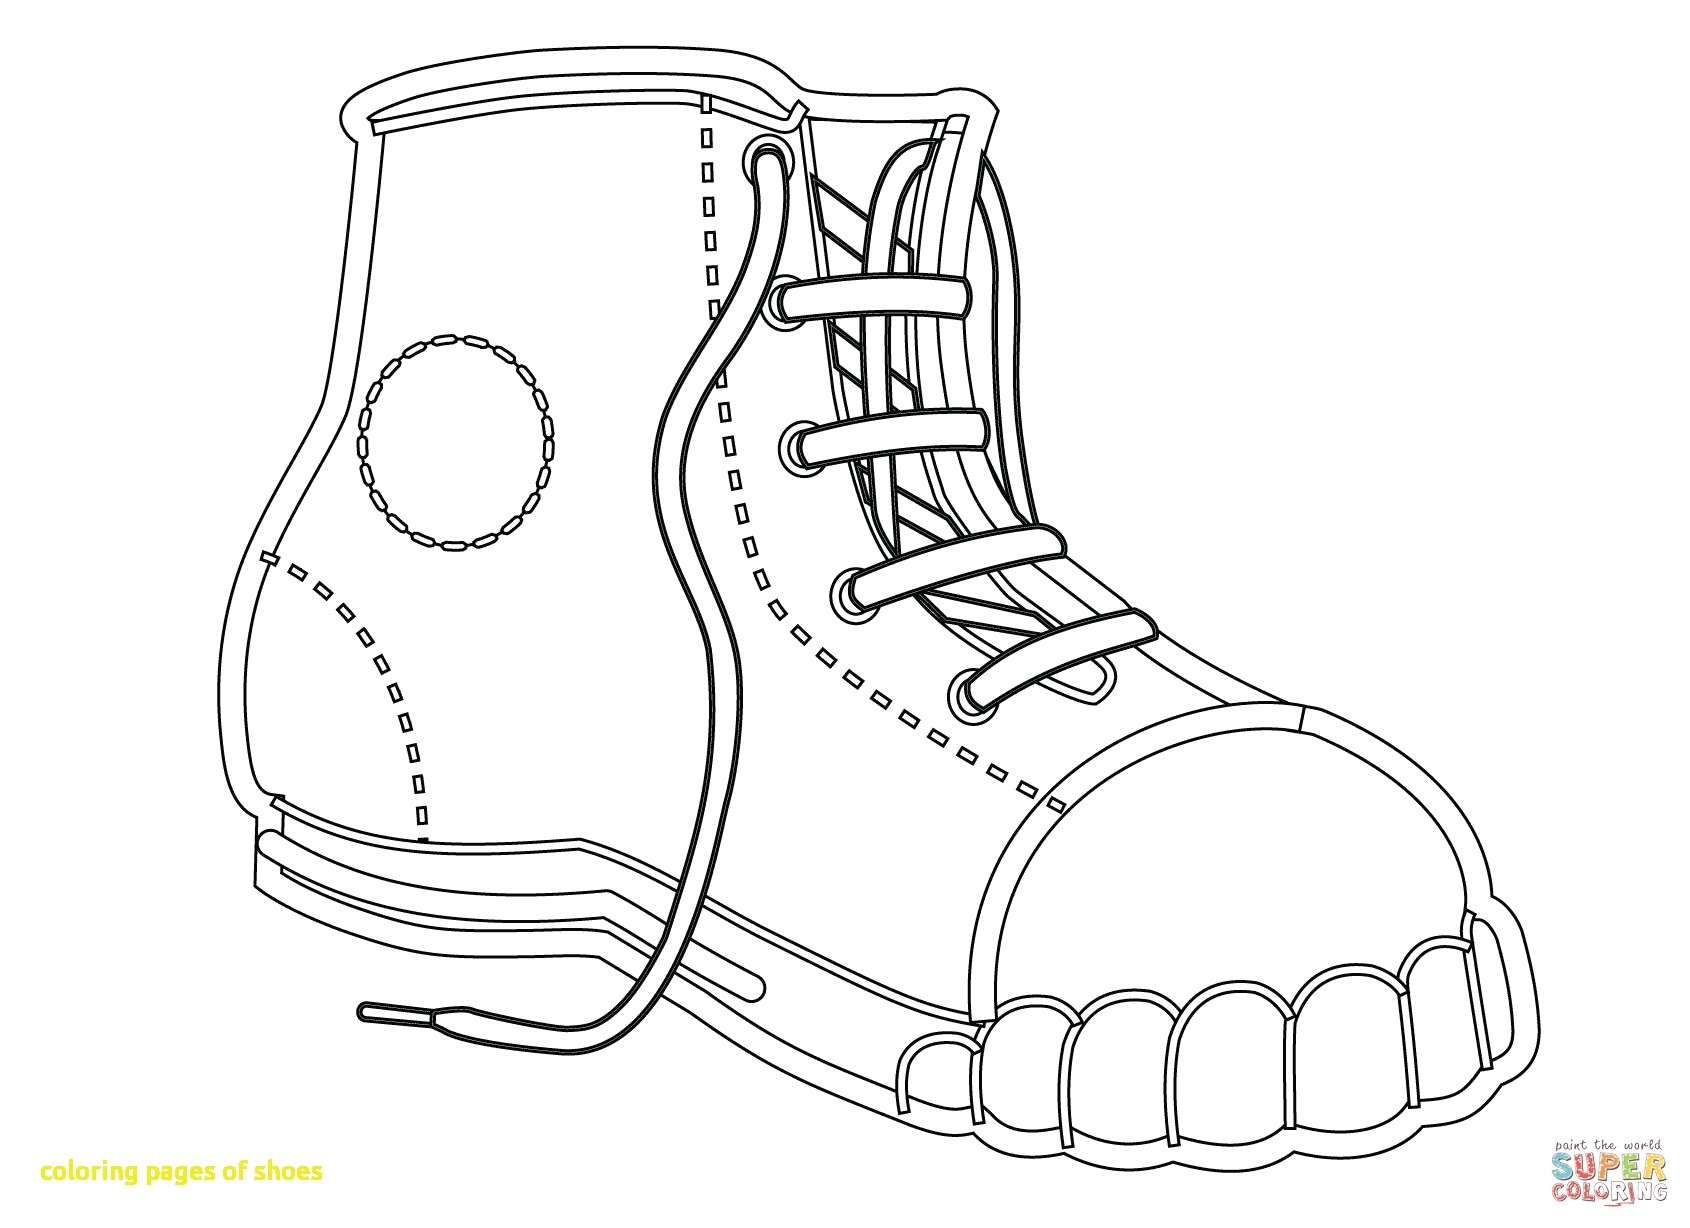 Converse Shoe Coloring Page At Getcolorings